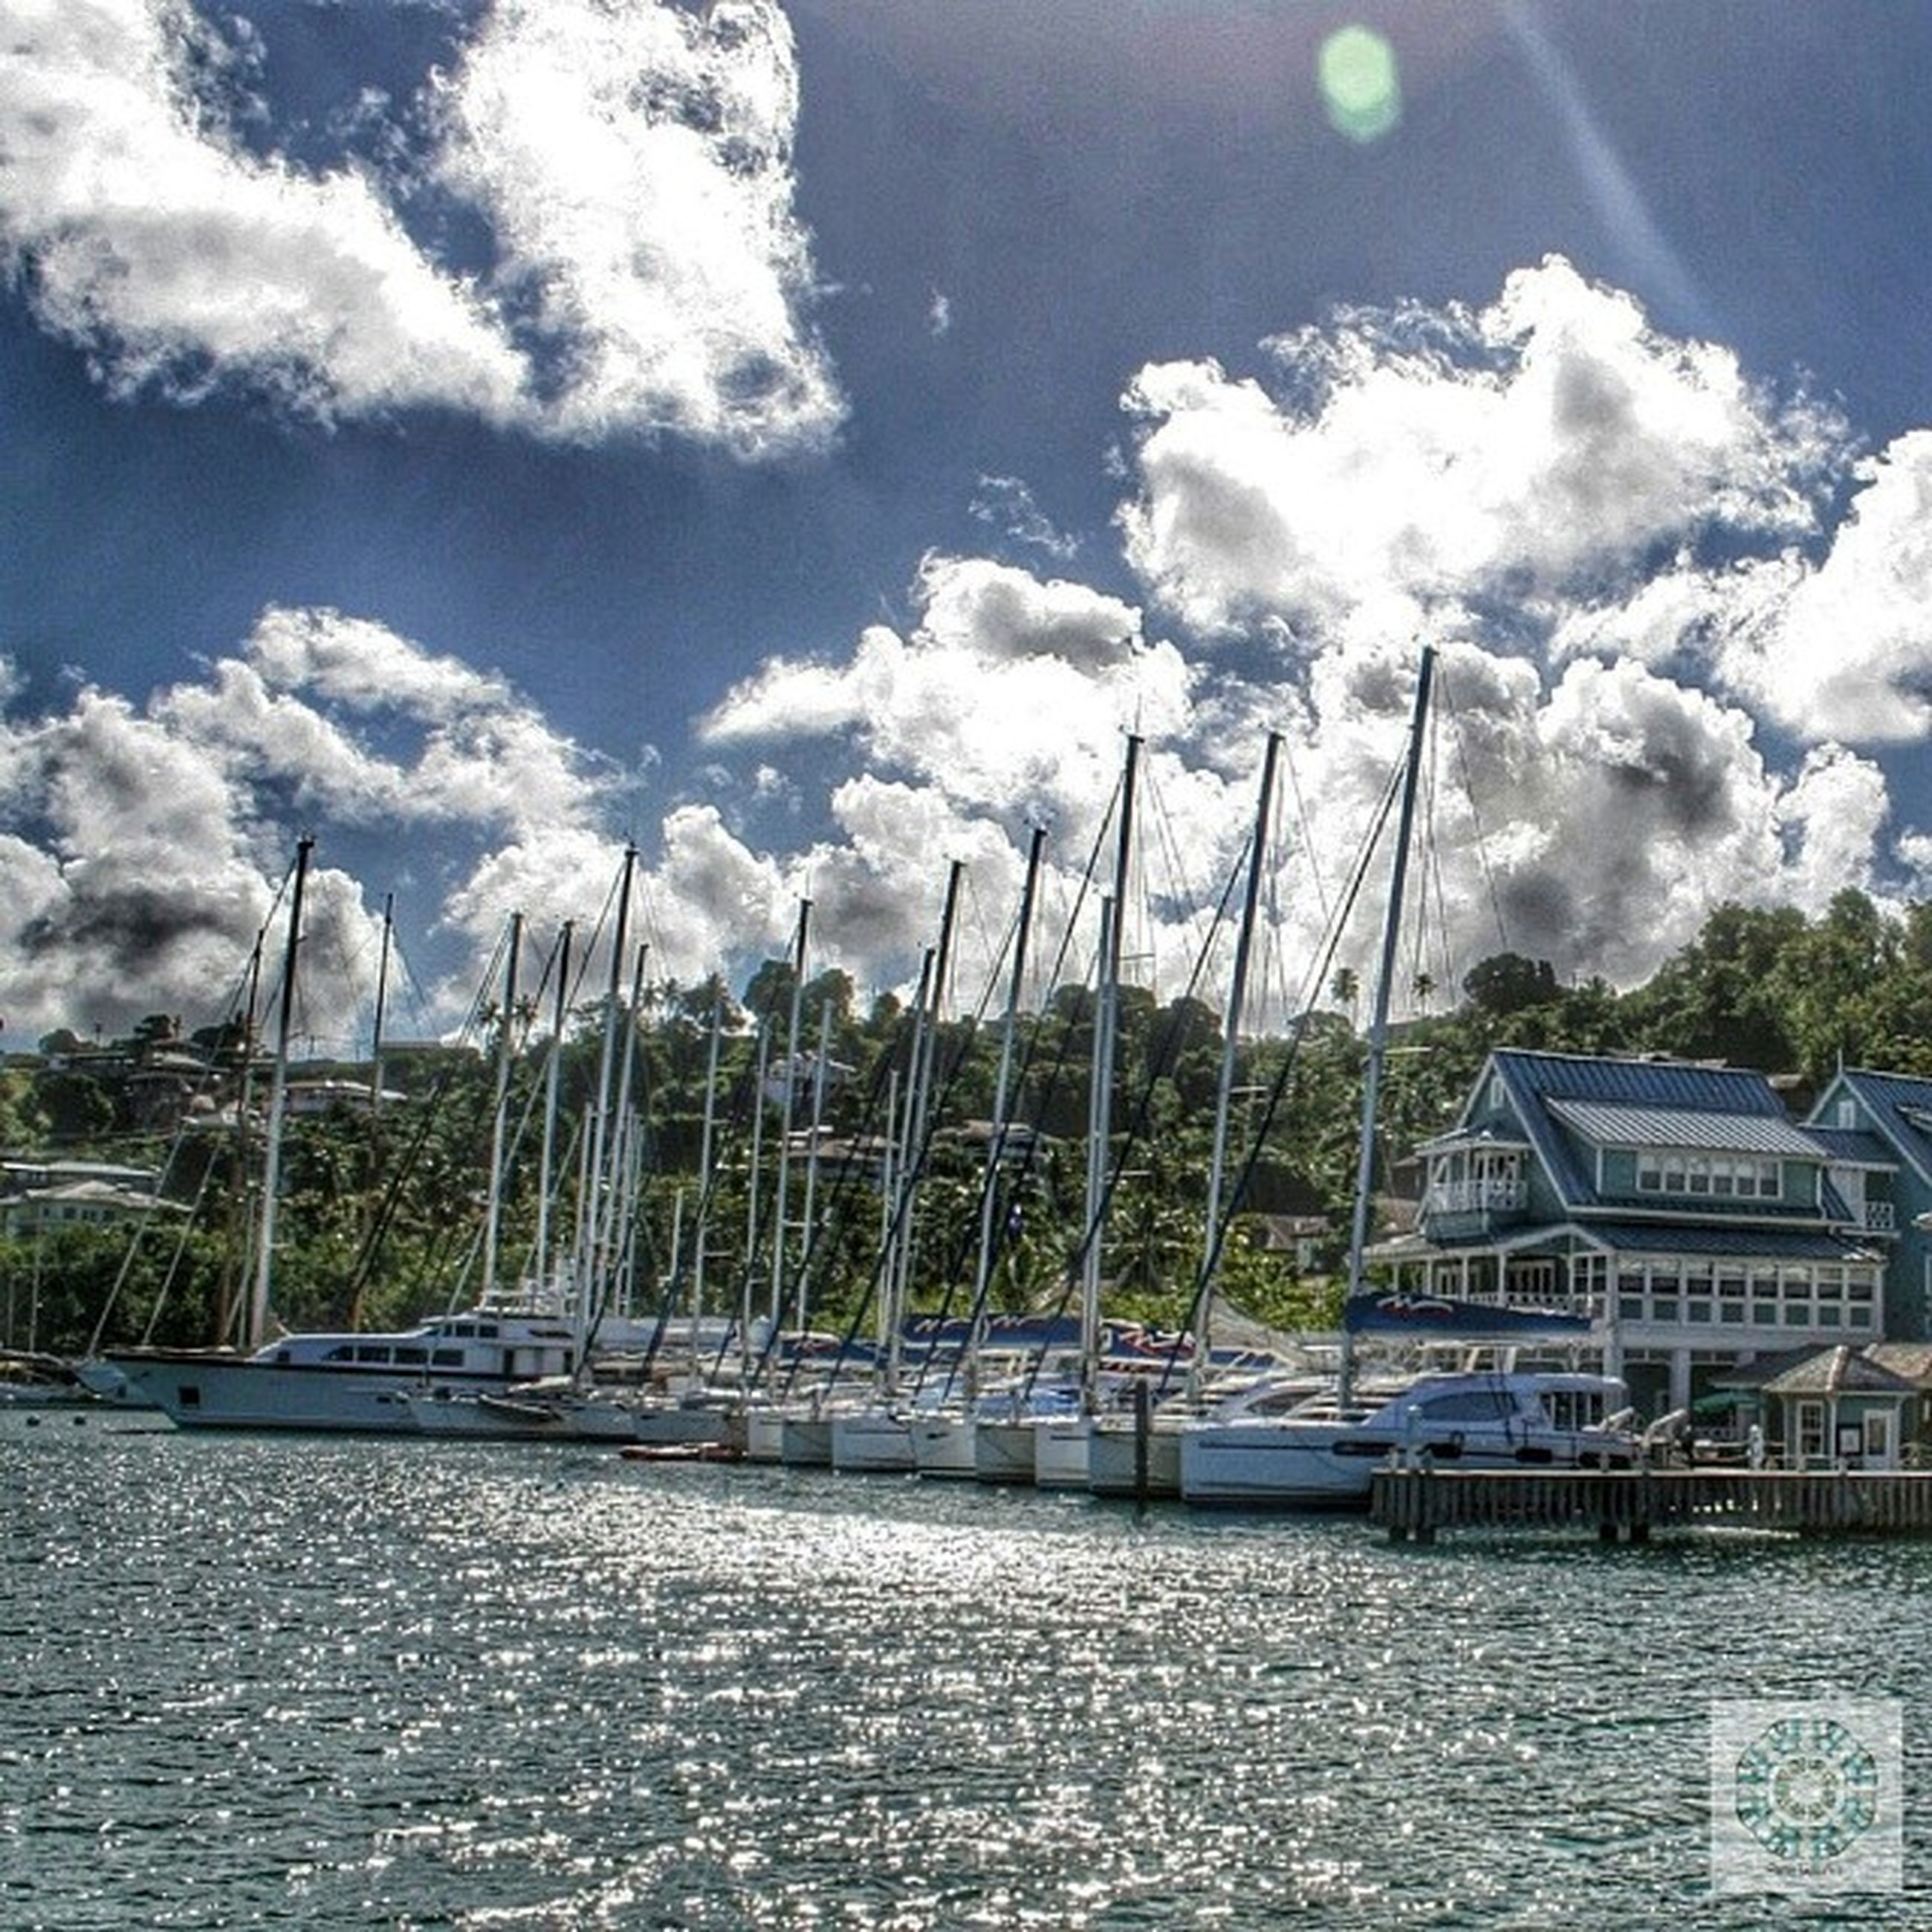 sky, water, cloud - sky, waterfront, cloudy, cloud, sea, nautical vessel, built structure, harbor, river, nature, day, tree, transportation, outdoors, pier, blue, architecture, tranquility